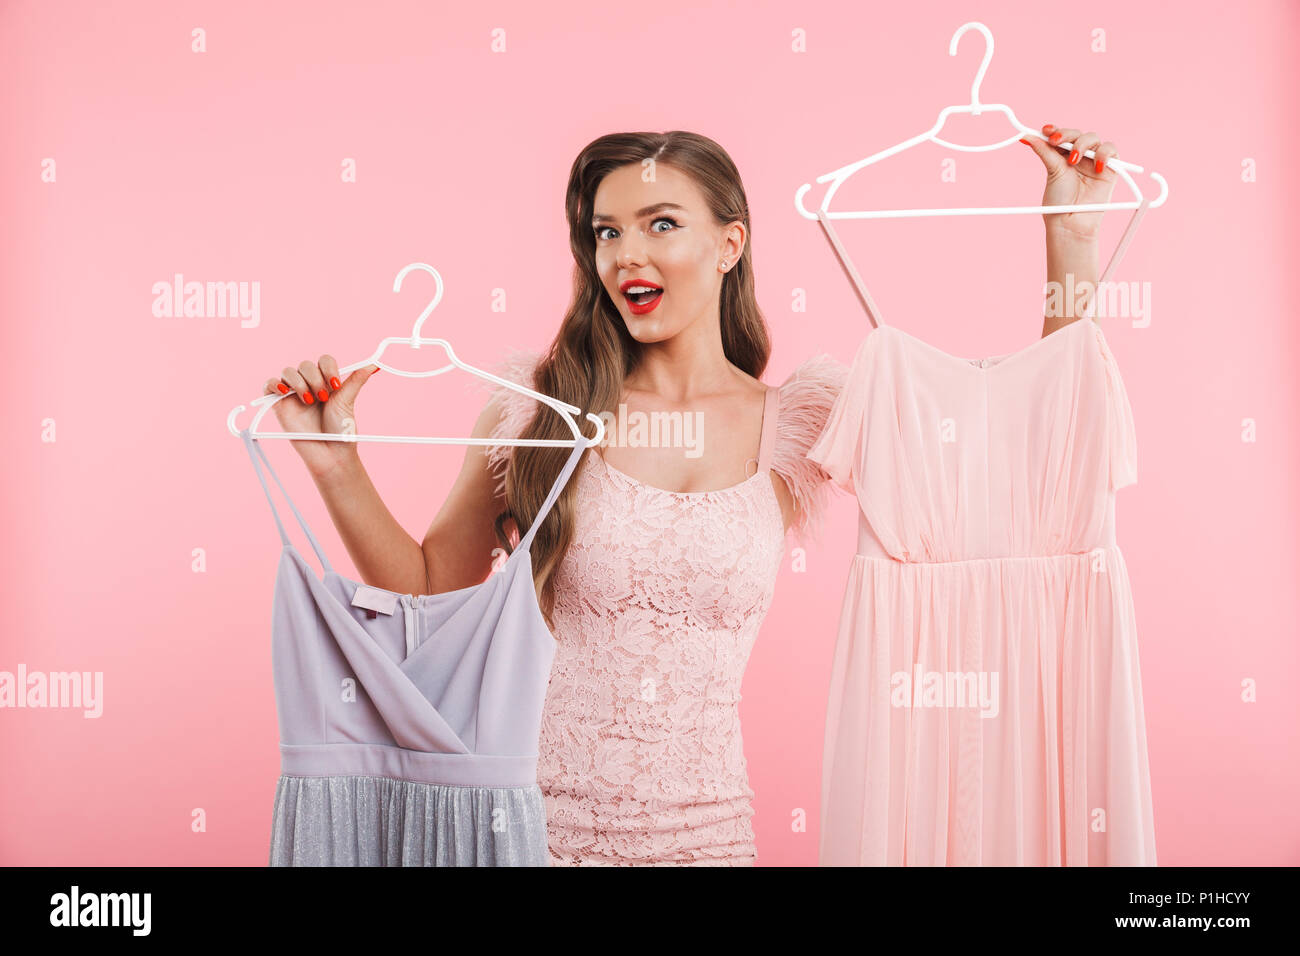 Dresses On Hangers Imágenes De Stock & Dresses On Hangers Fotos De ...